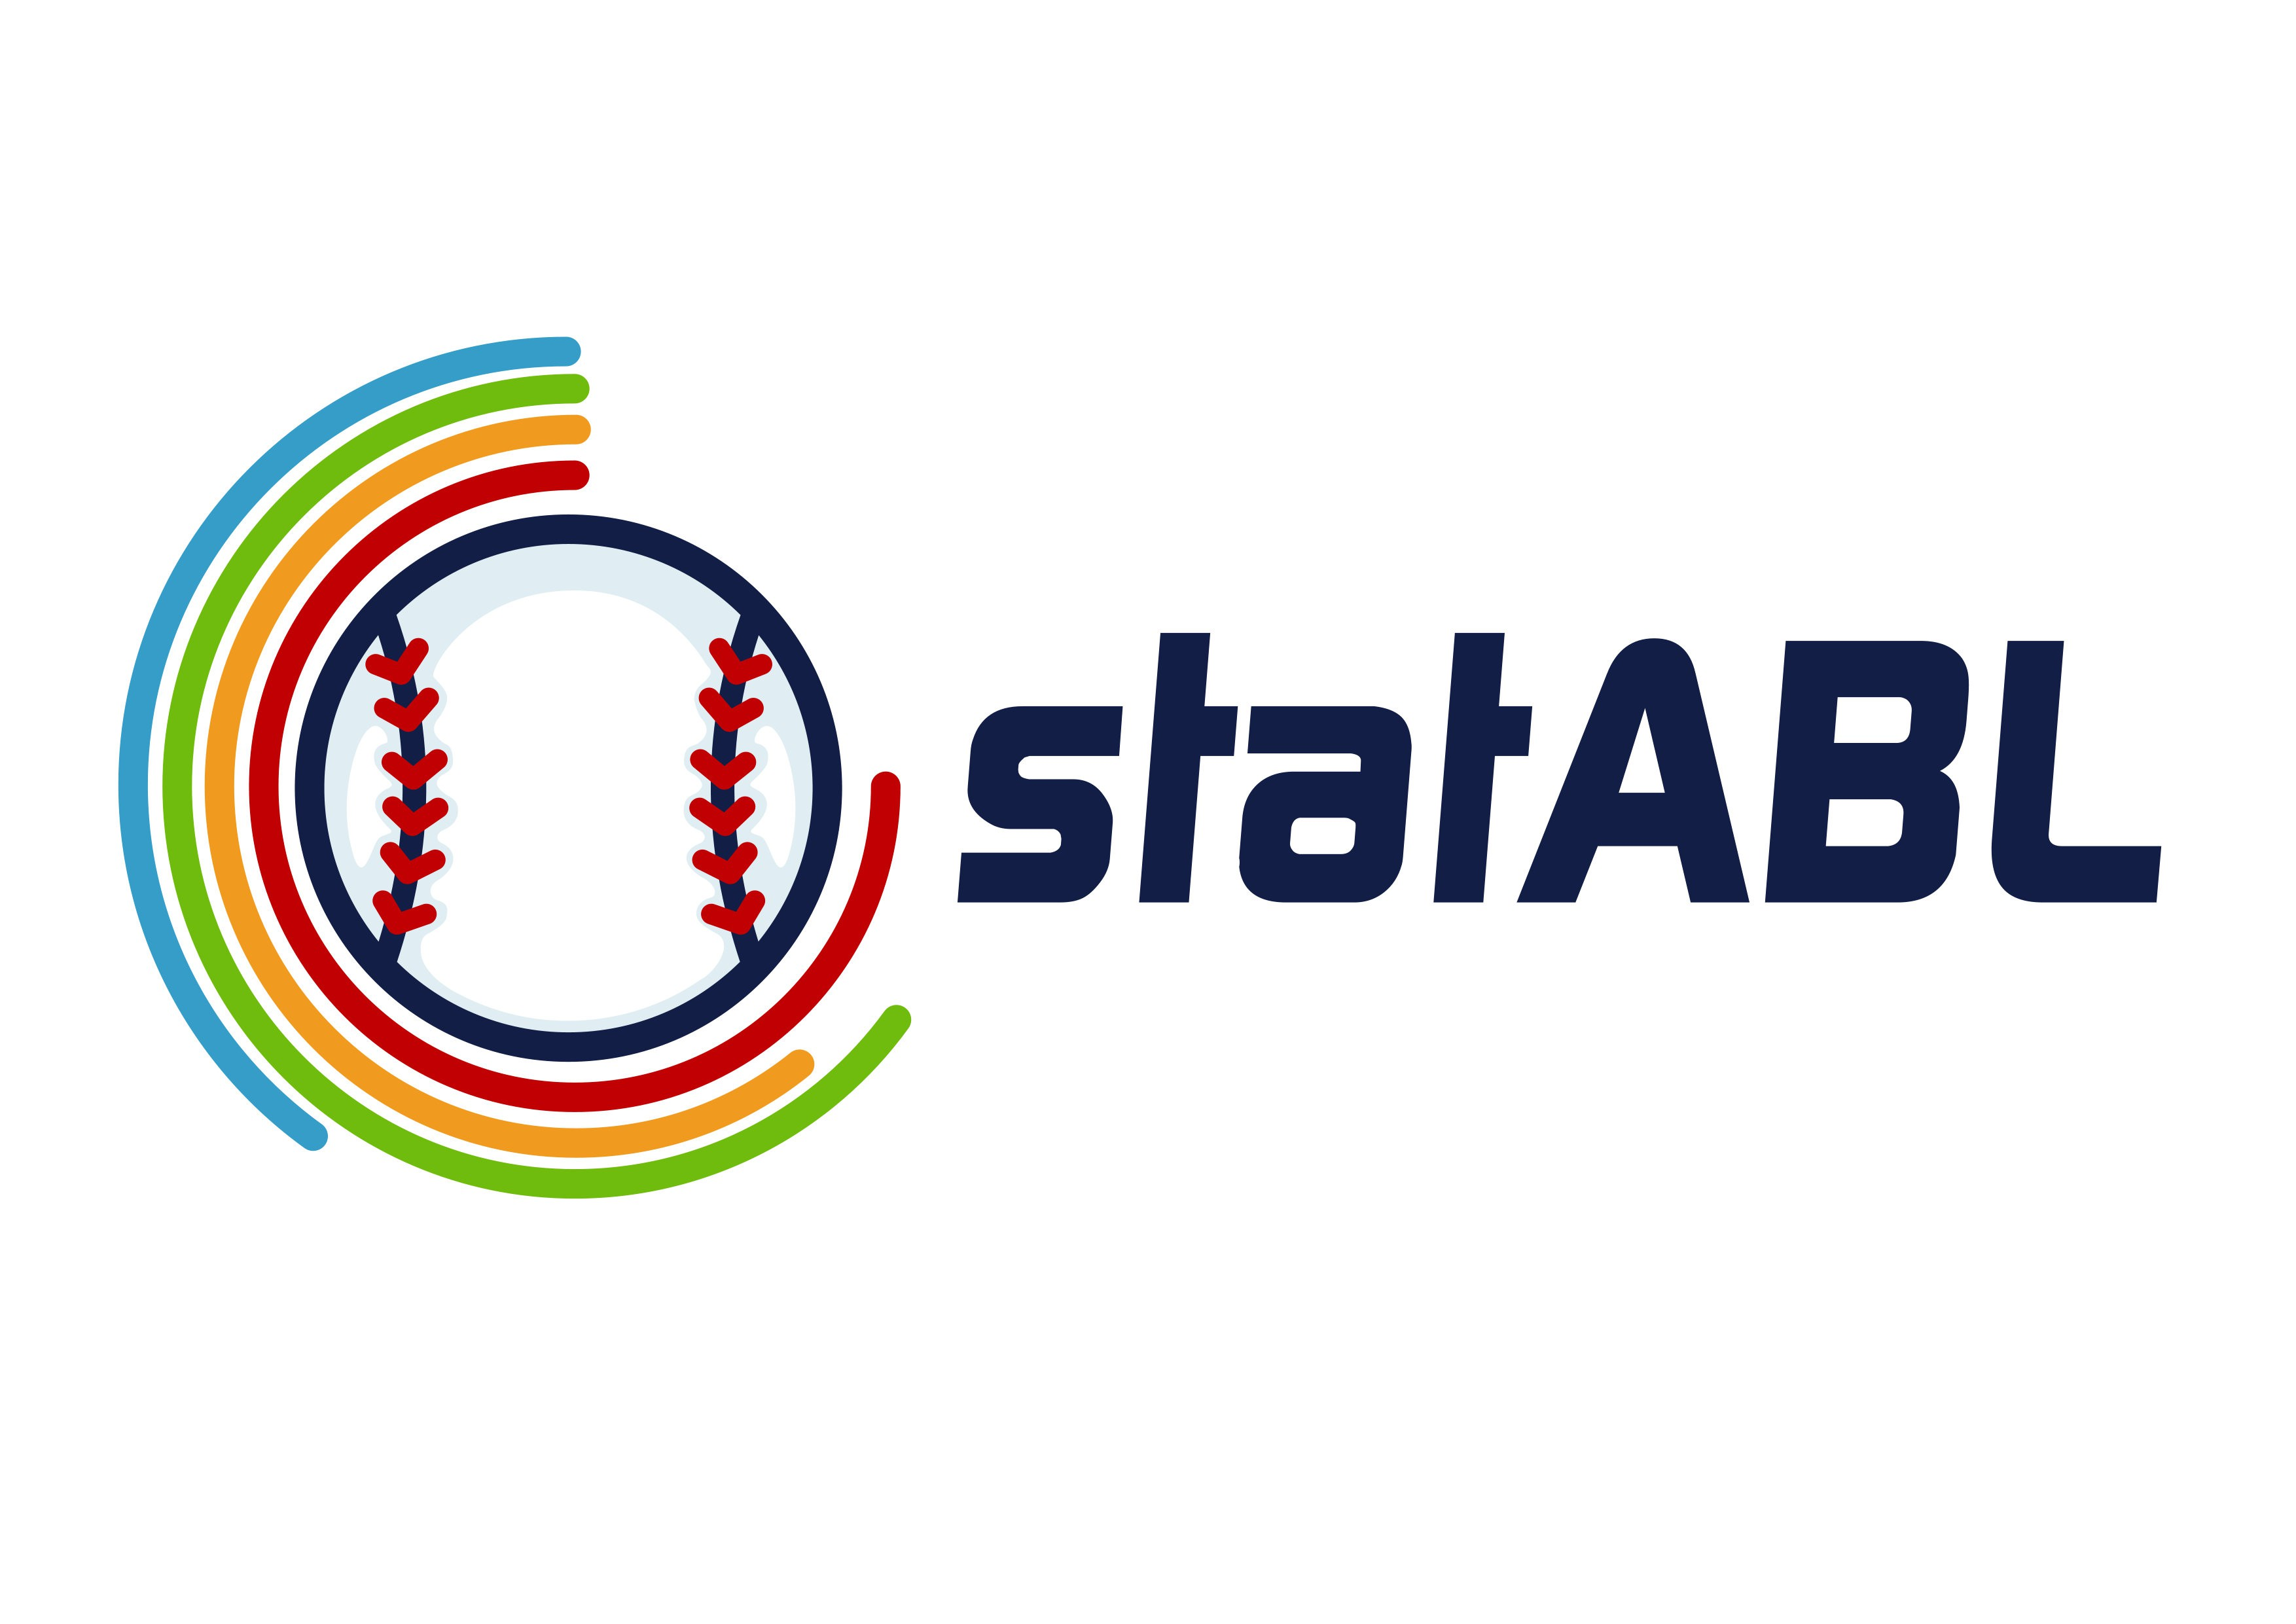 Design a logo for a baseball site that appeals to sports fans and stats nerds